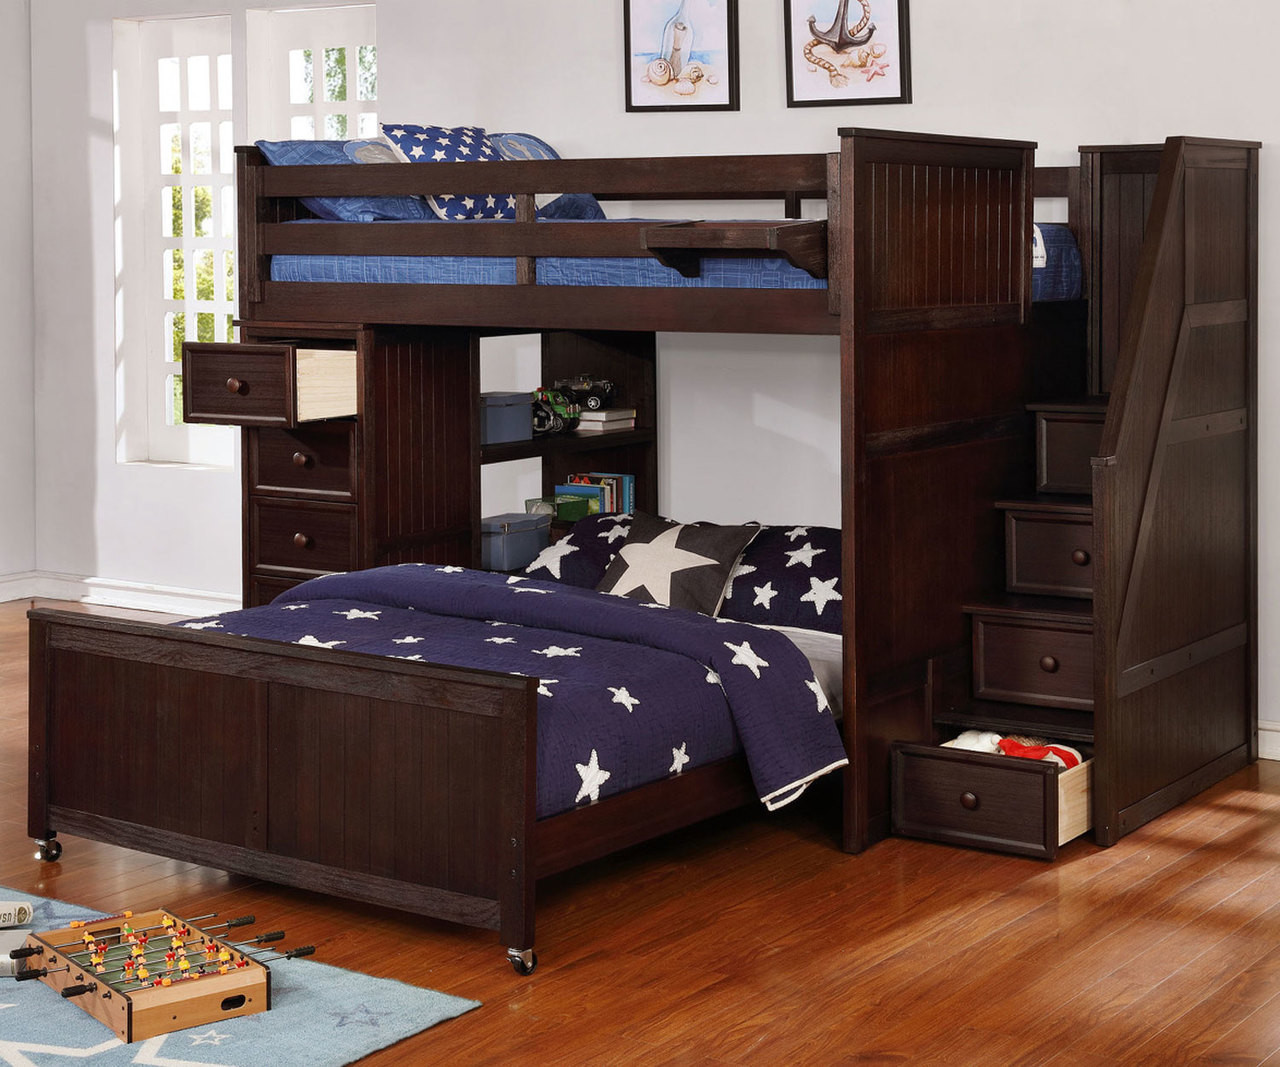 Multifunction Loft Bed In Weathered Espresso Allen House Kids Loft Beds And Bunk Beds